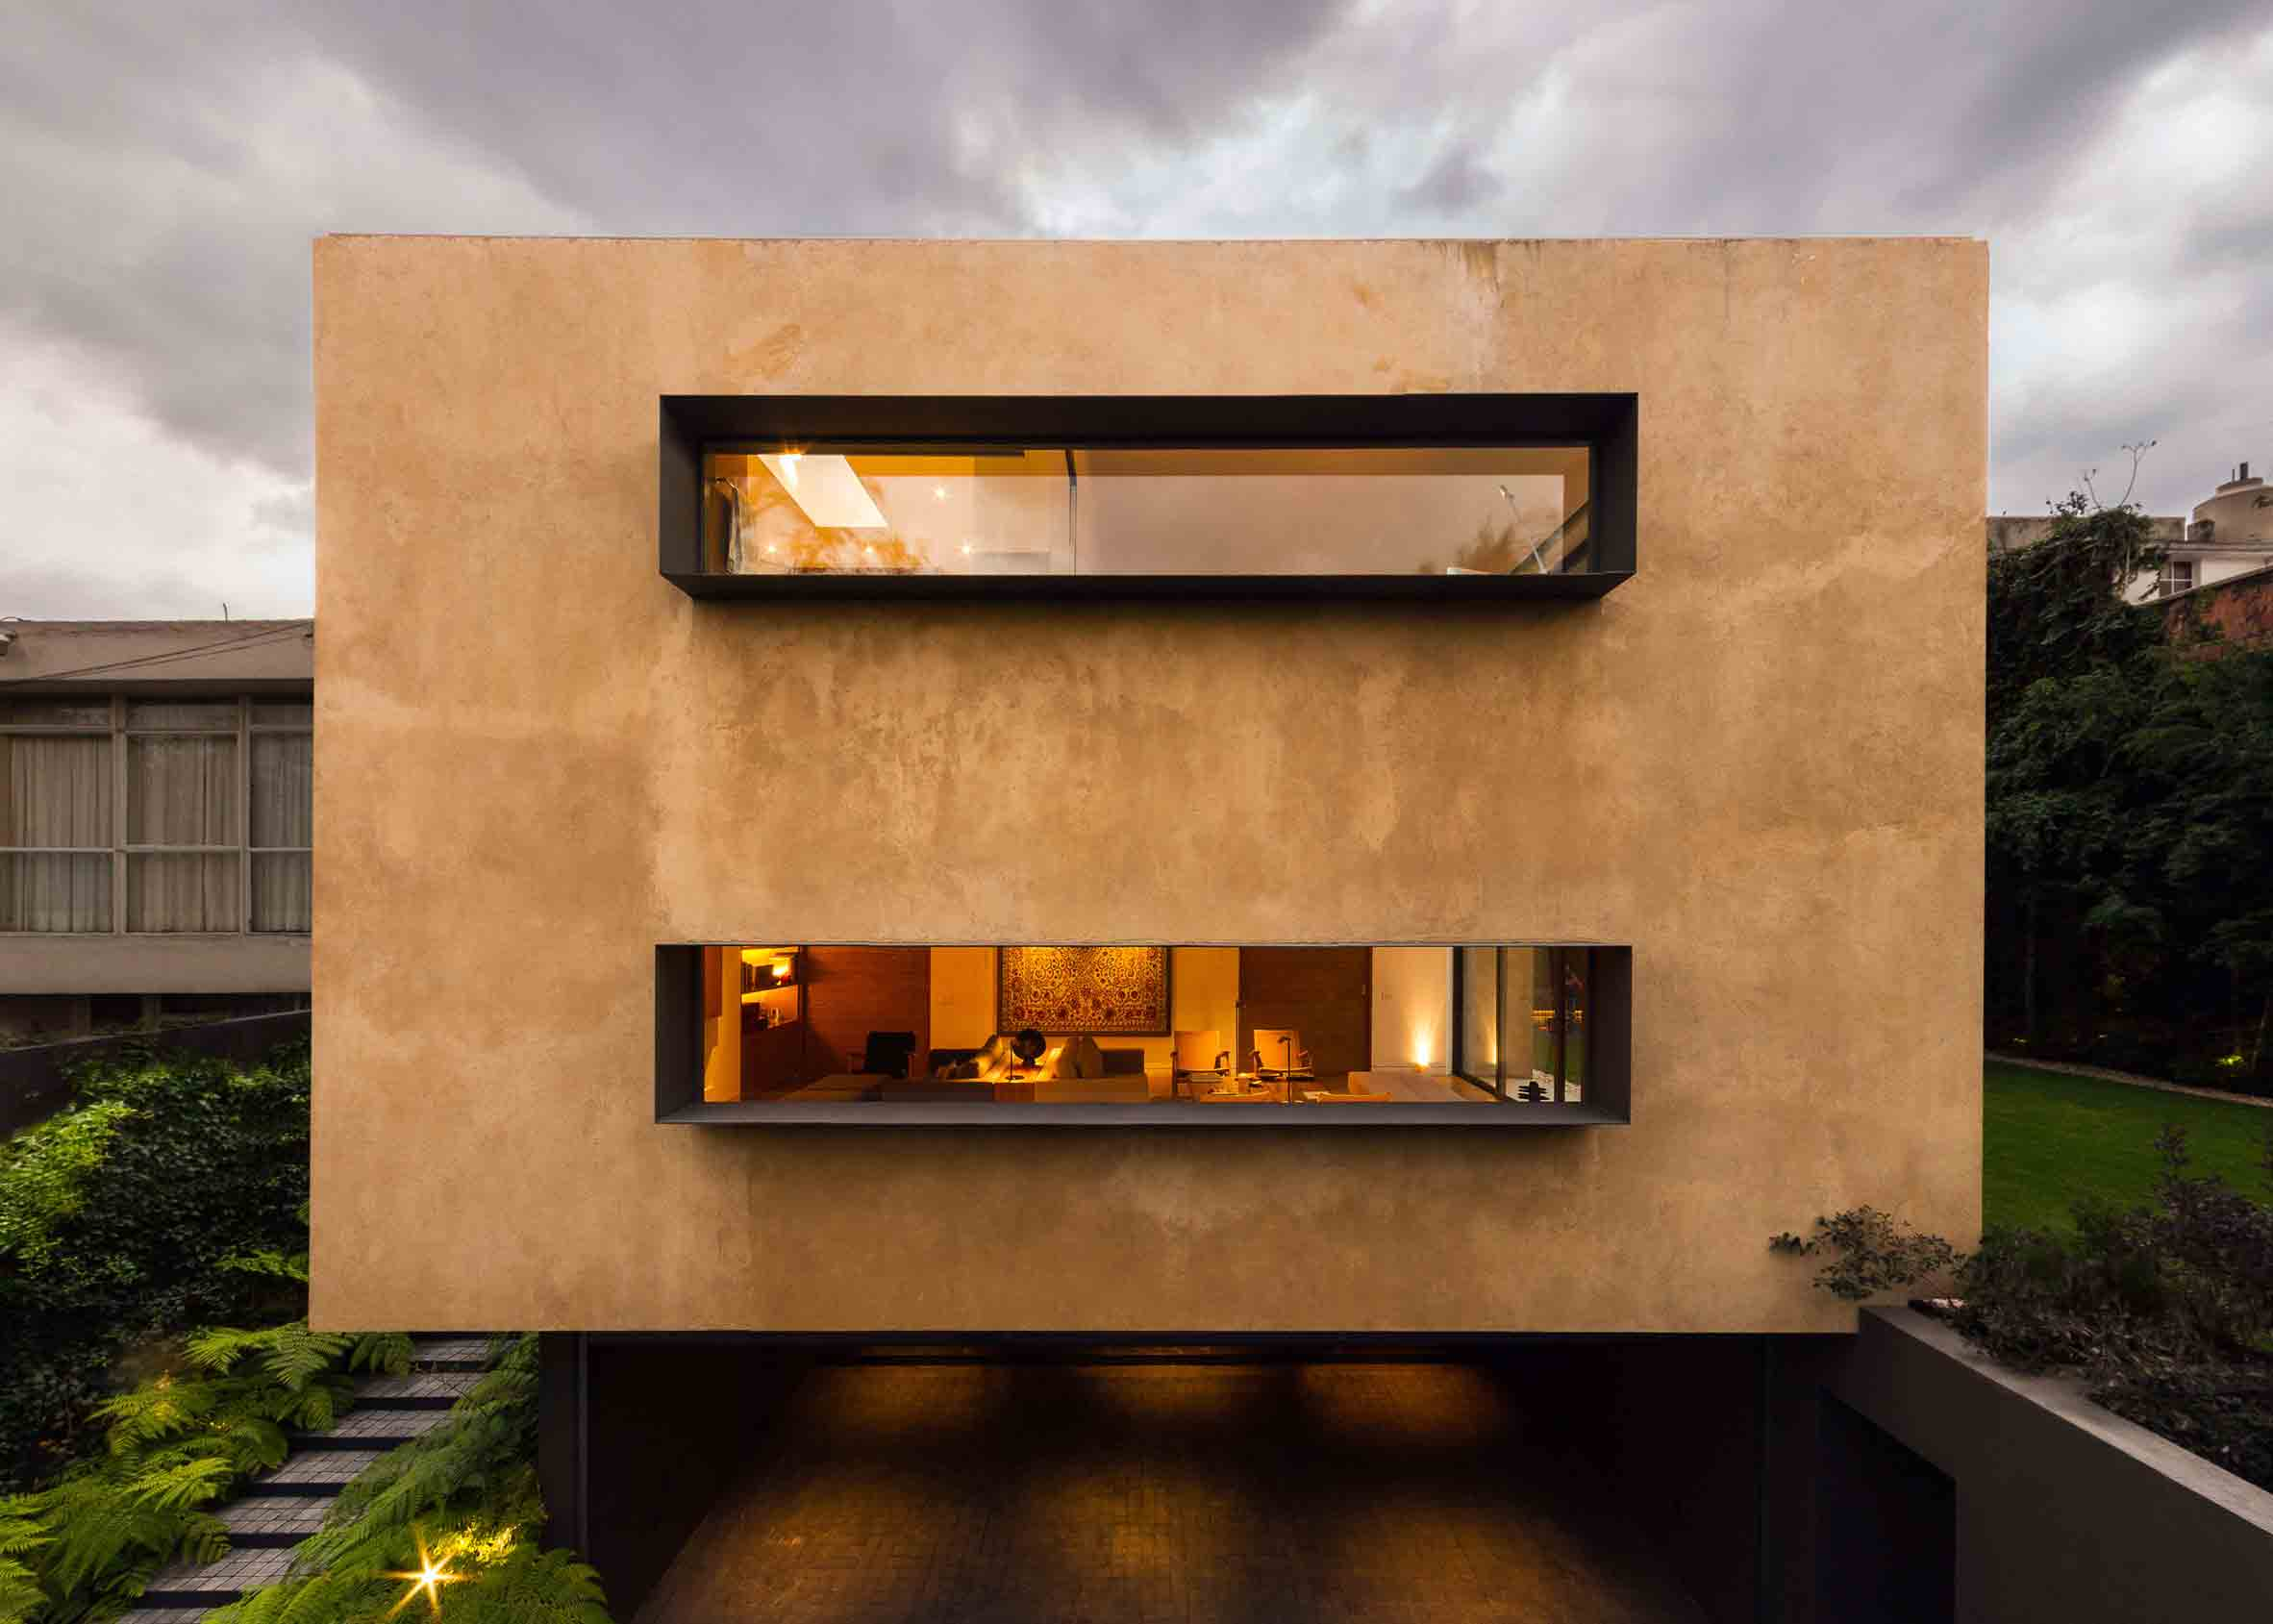 Clay house in Mexico City is all about light